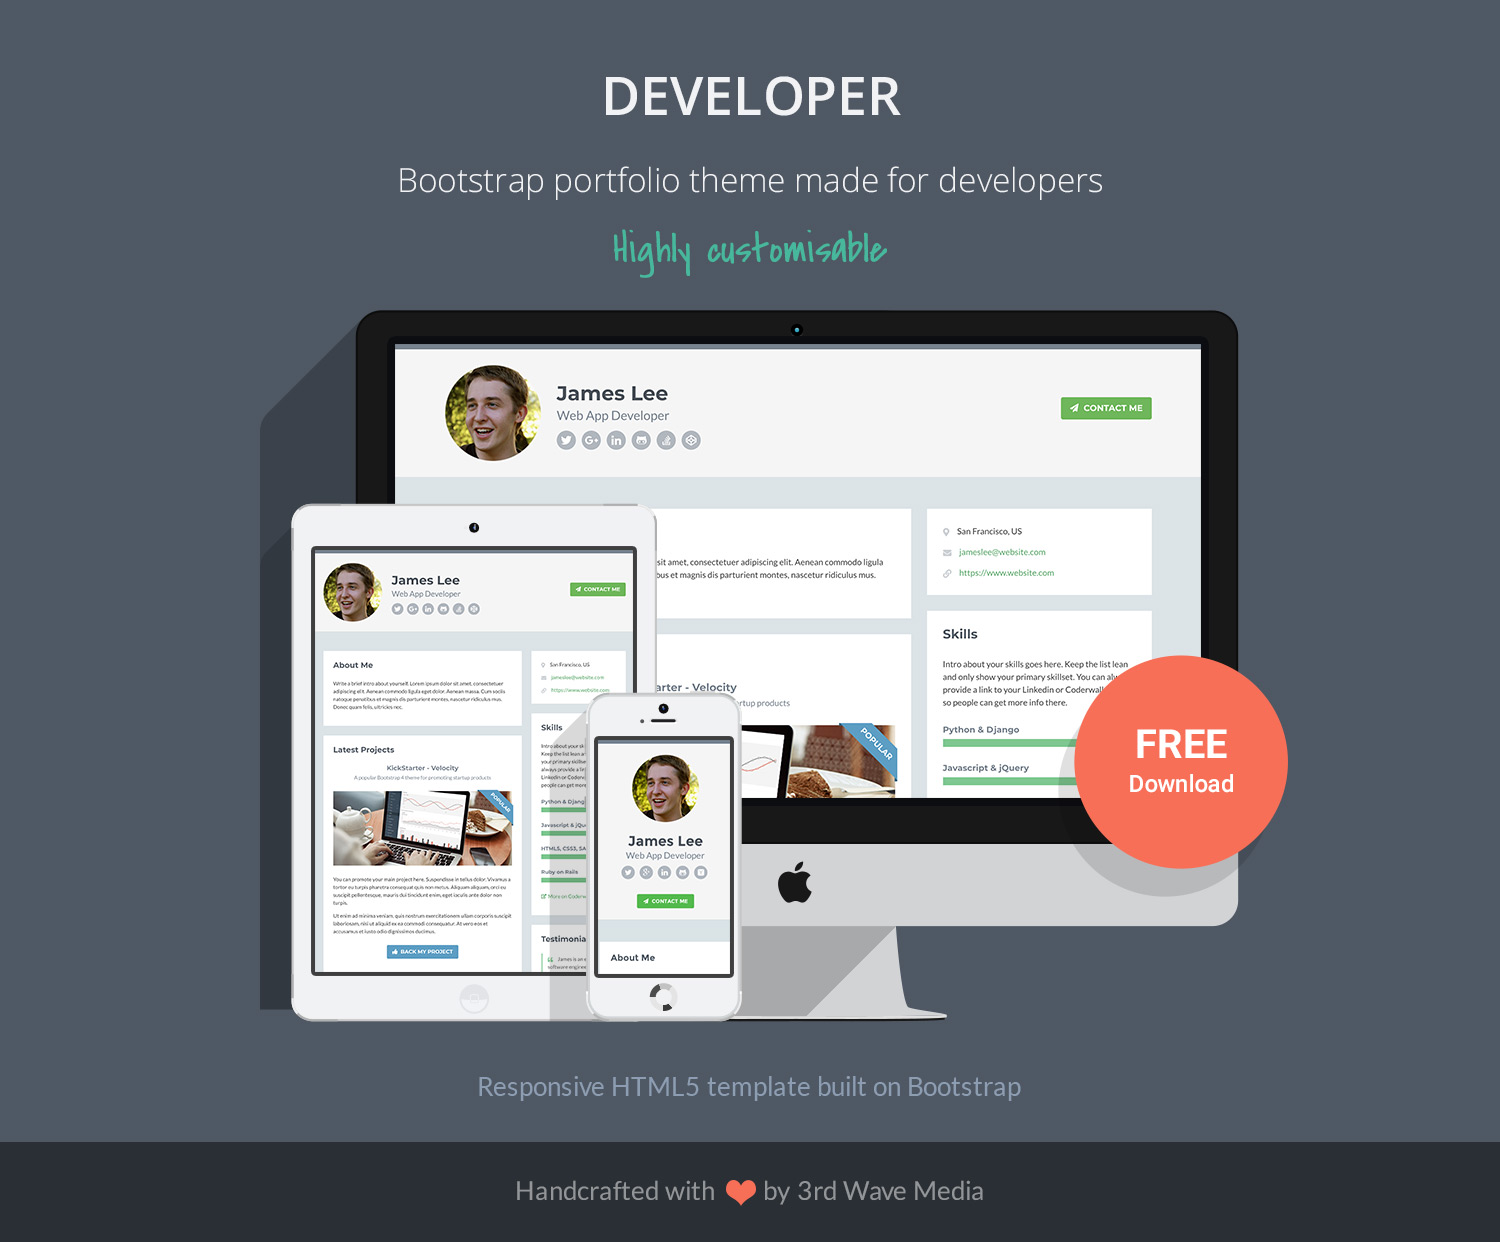 Developer - Free Bootstrap 4 Portfolio Theme for Developers